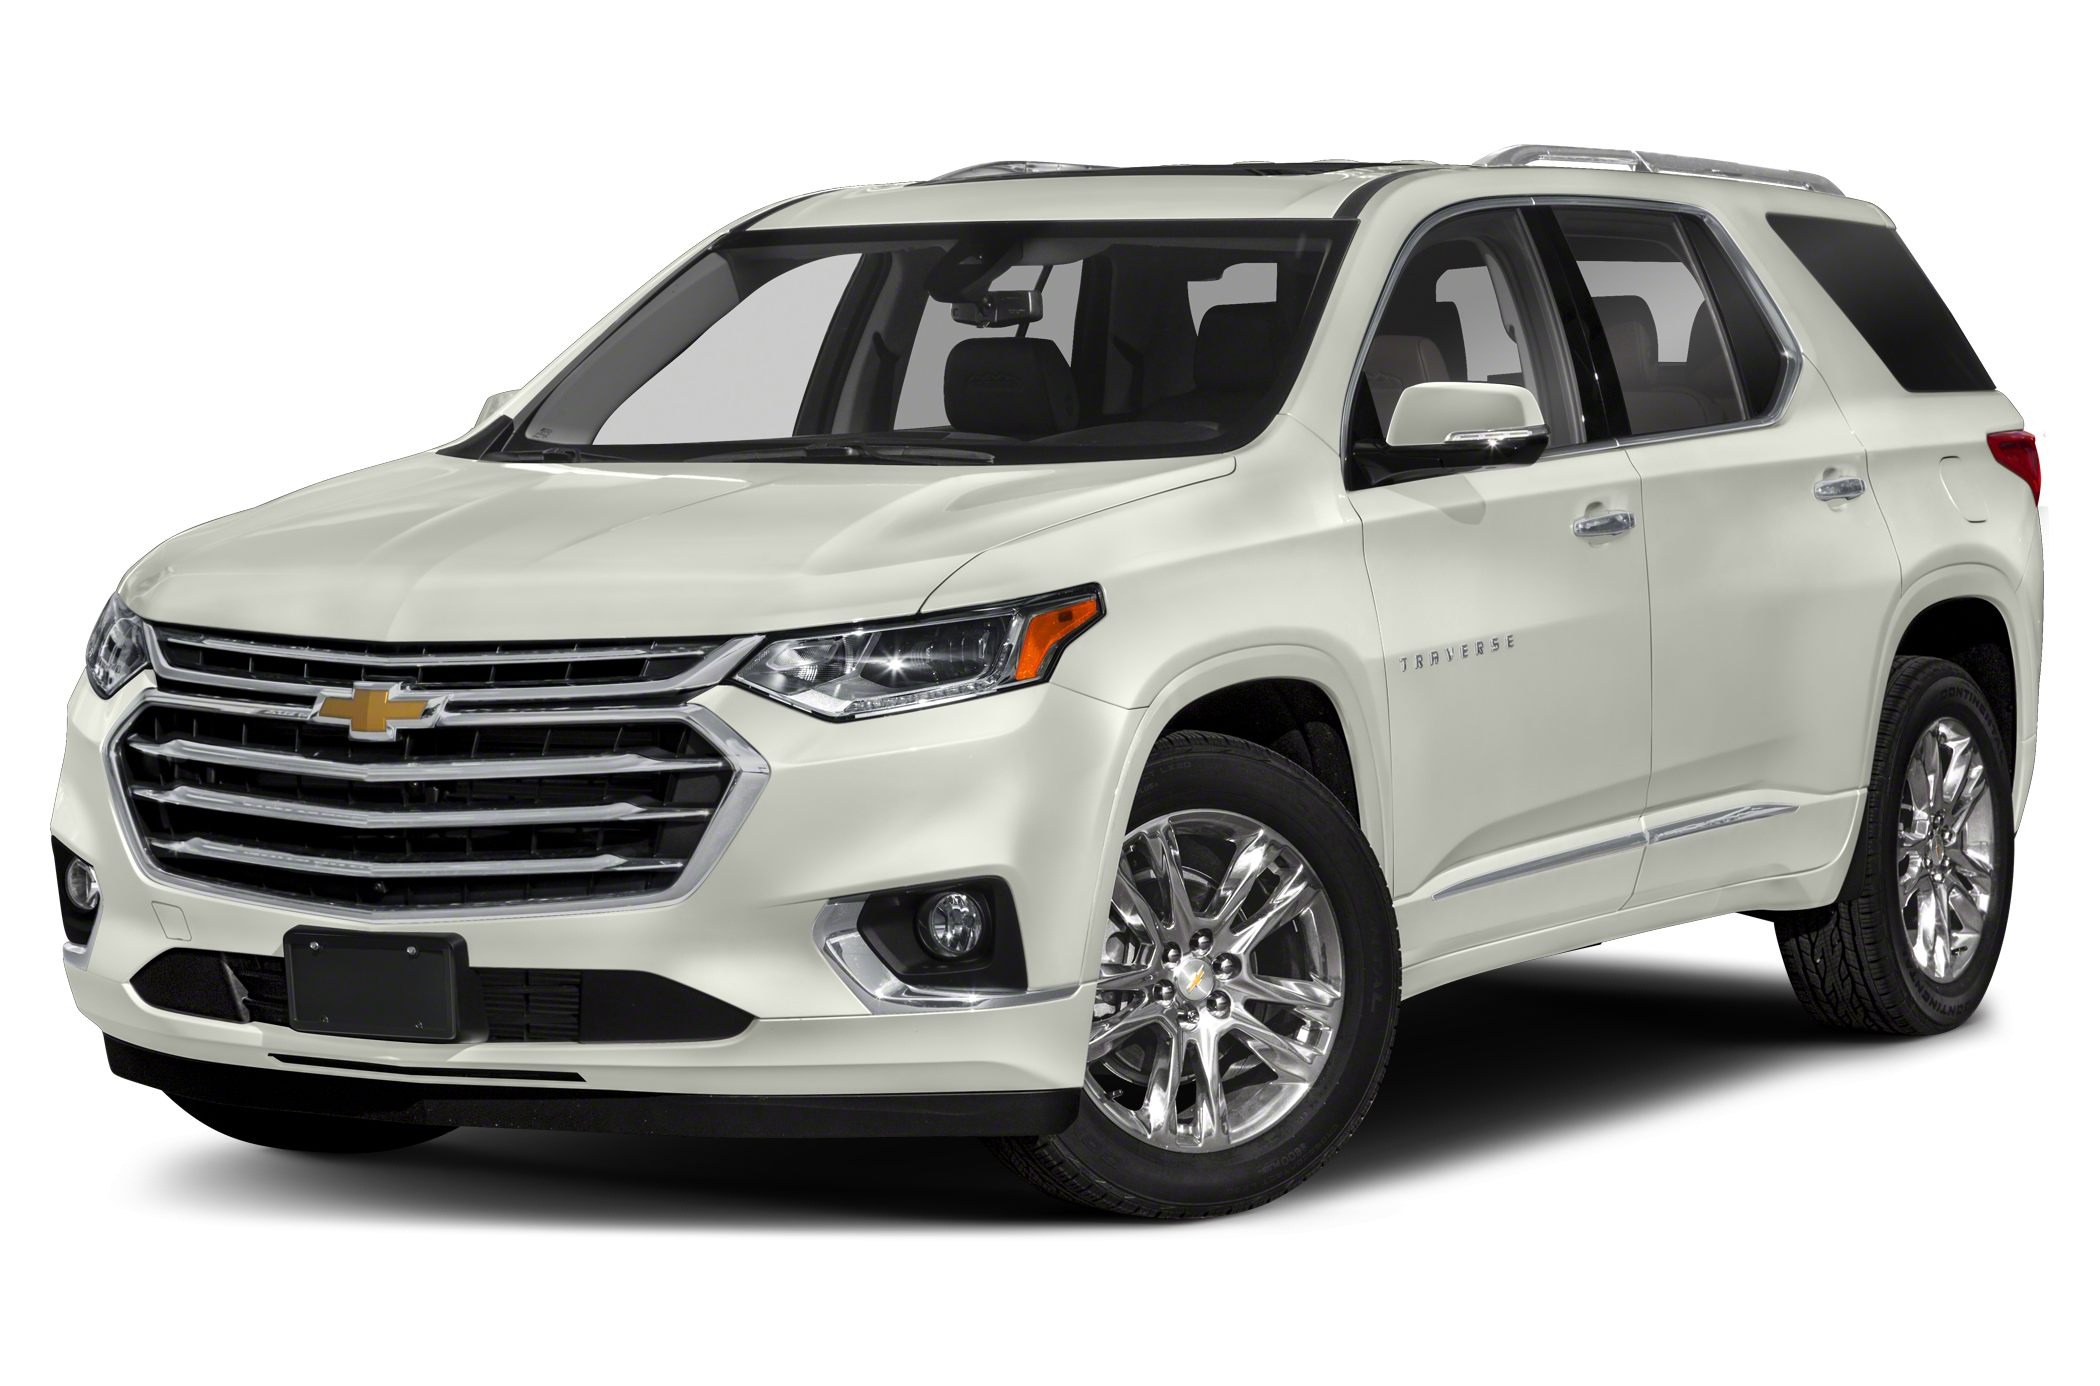 2020 Chevrolet Traverse High Country All-Wheel Drive Pricing And Options 2021 Chevy Traverse Premier Build And Price, Near Me, Colors